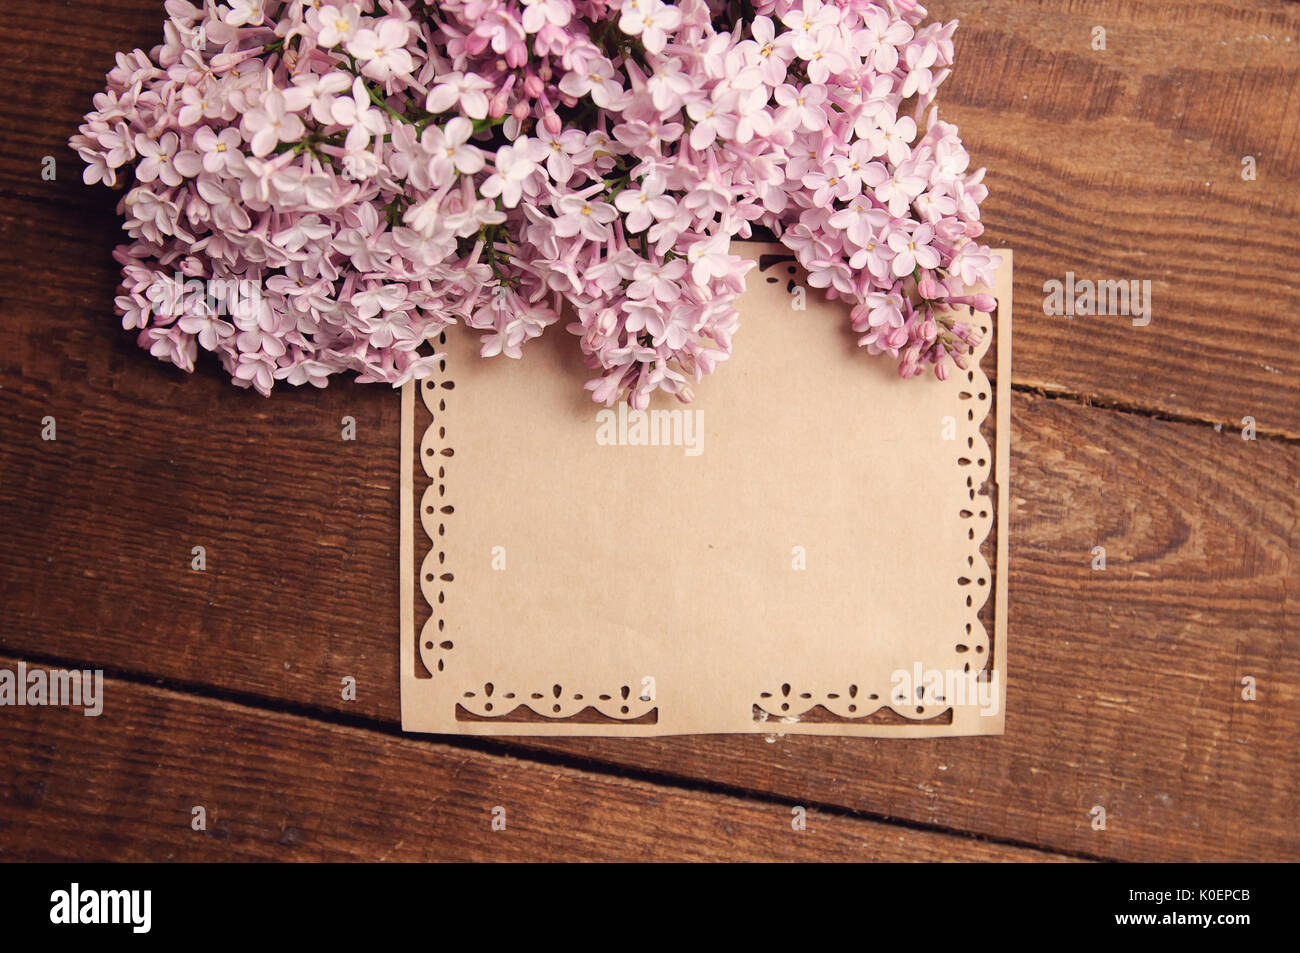 wooden table bouquet flowers of pink lilac attached greeting cards - Stock Image